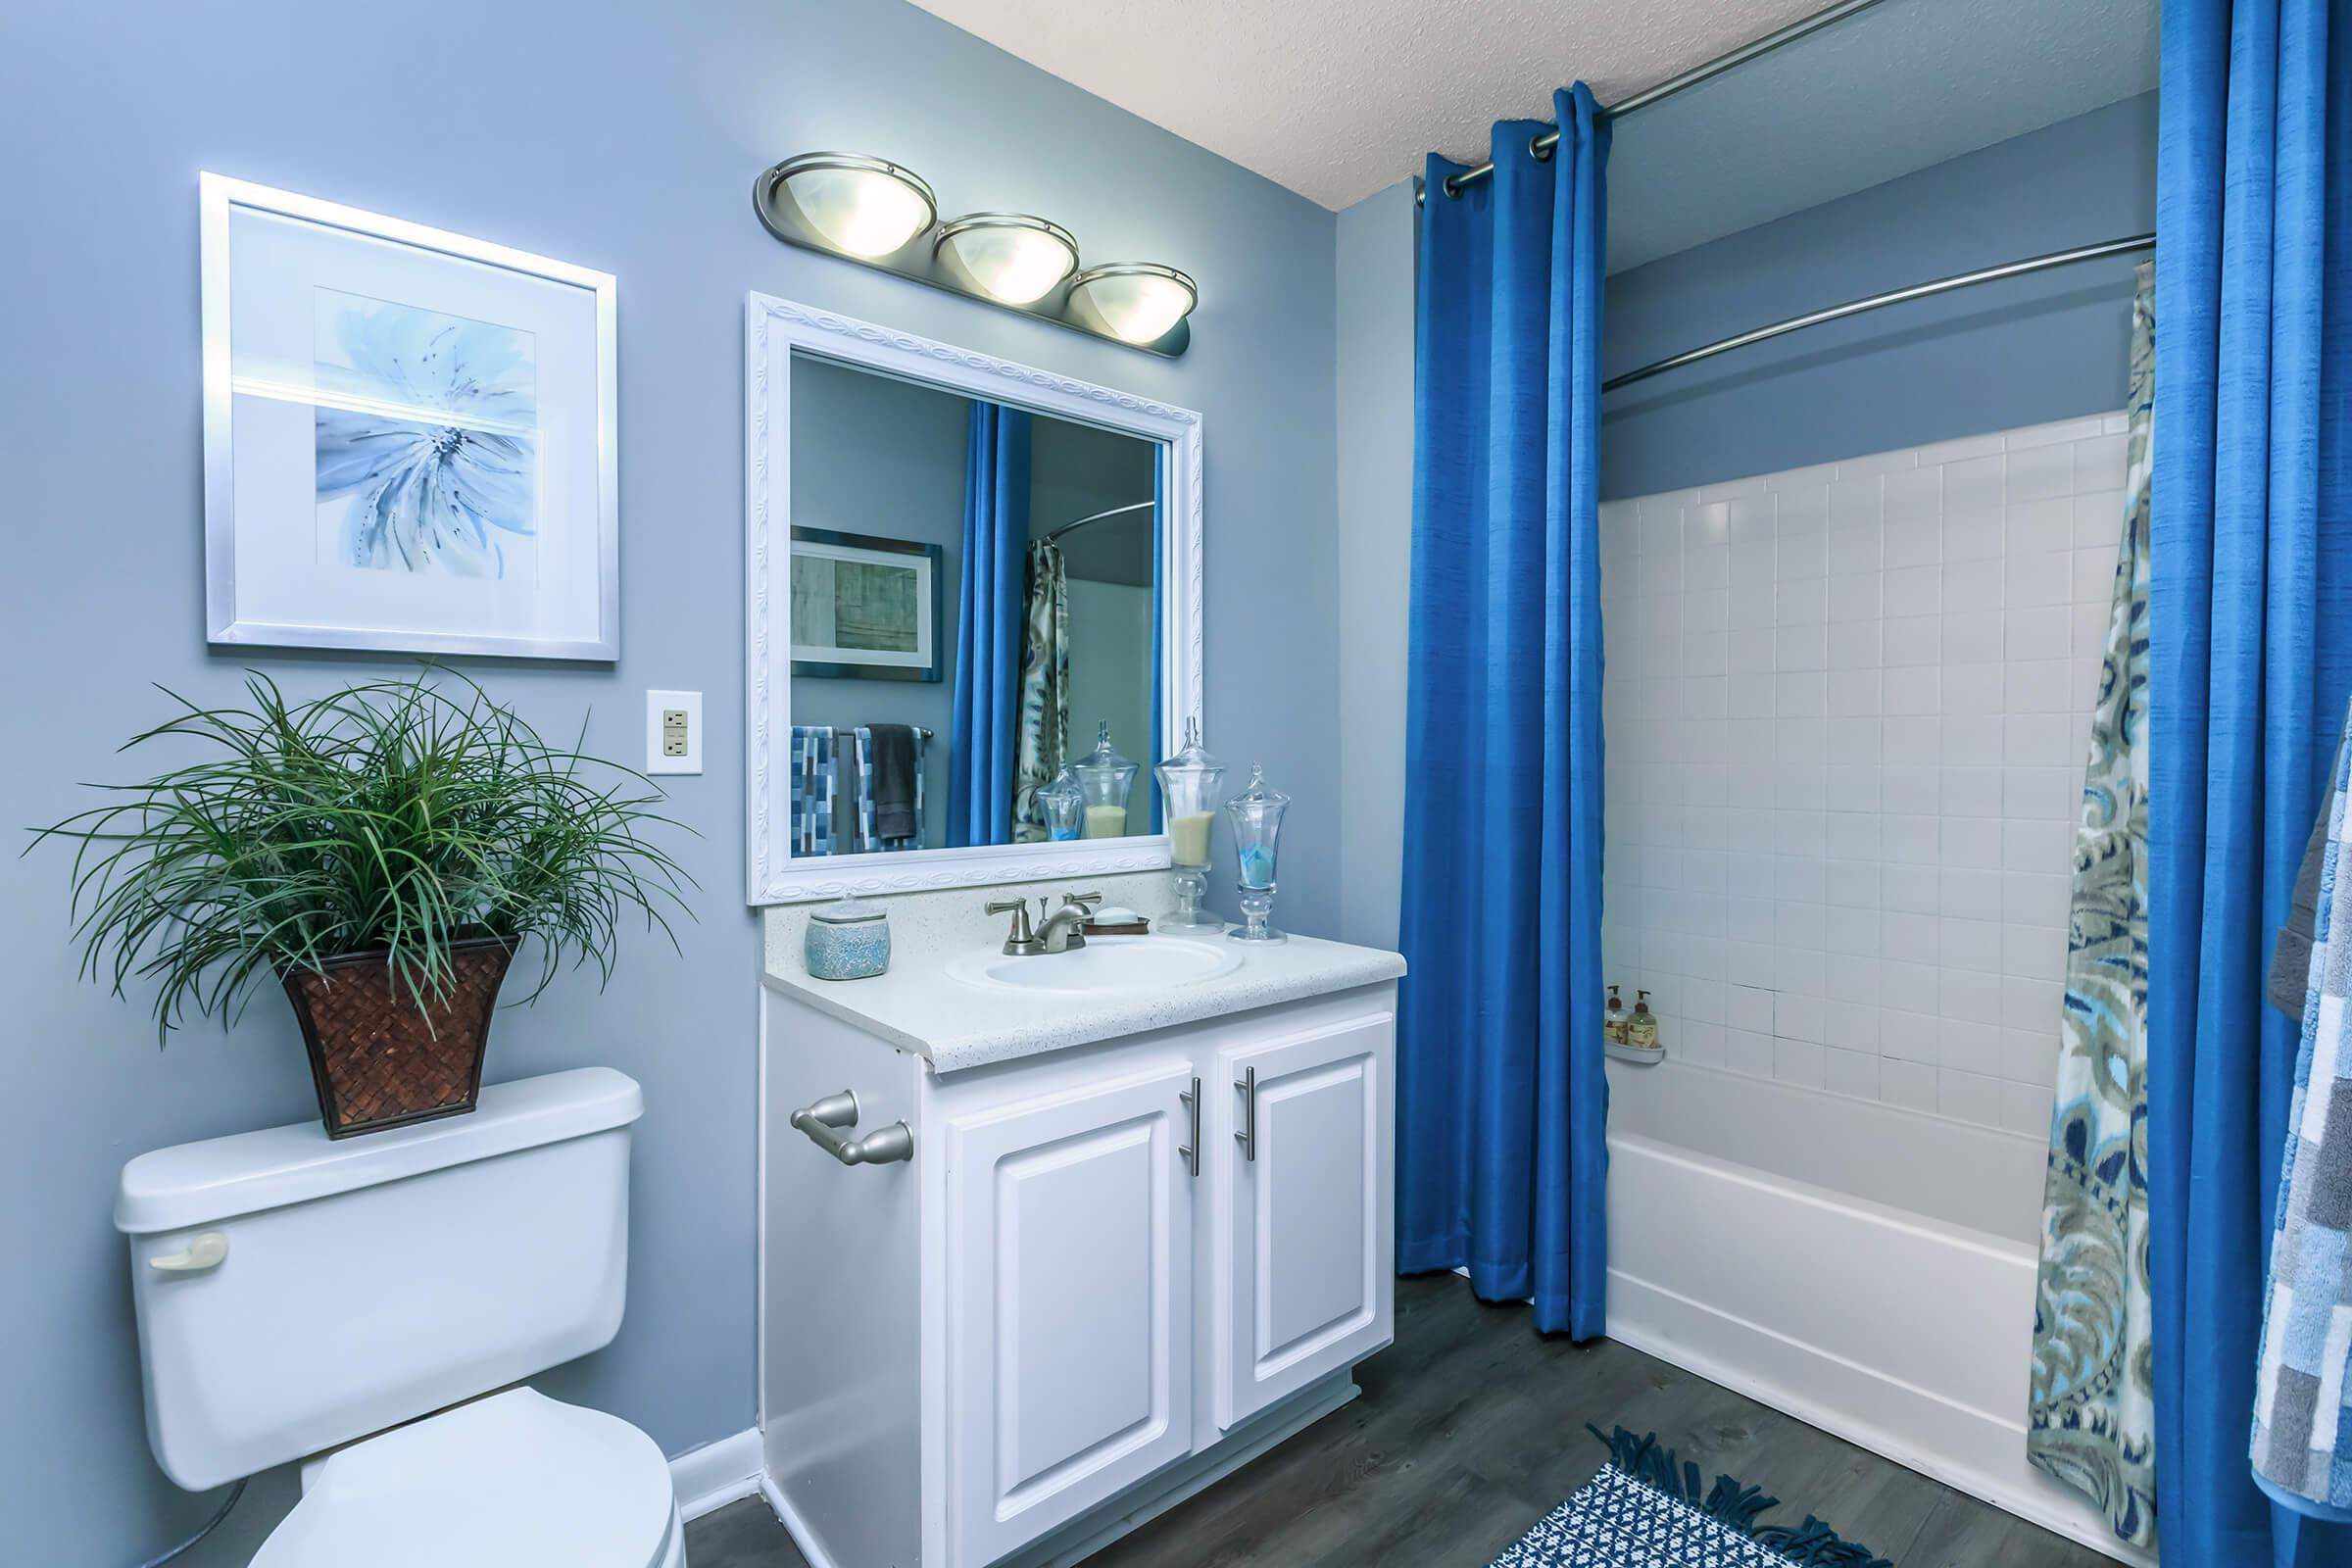 a blue and white tub next to a window